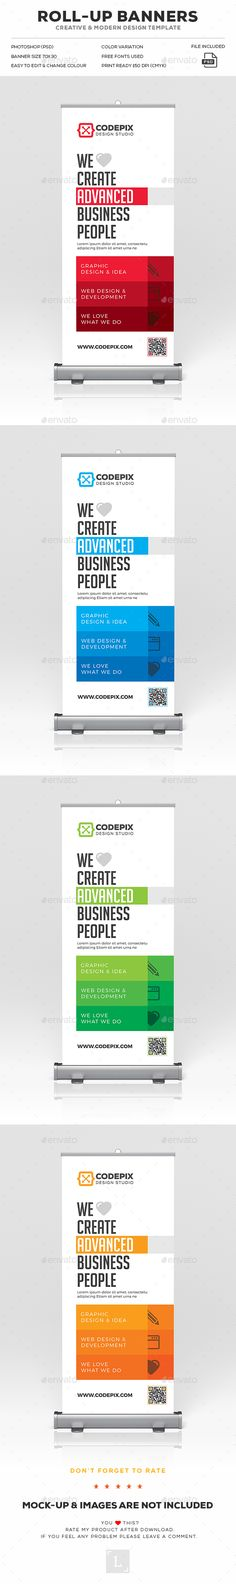 Roll-Up Banner Design Template - Signage Print Templates PSD. Download here: https://graphicriver.net/item/rollup-banner/19287548?ref=yinkira